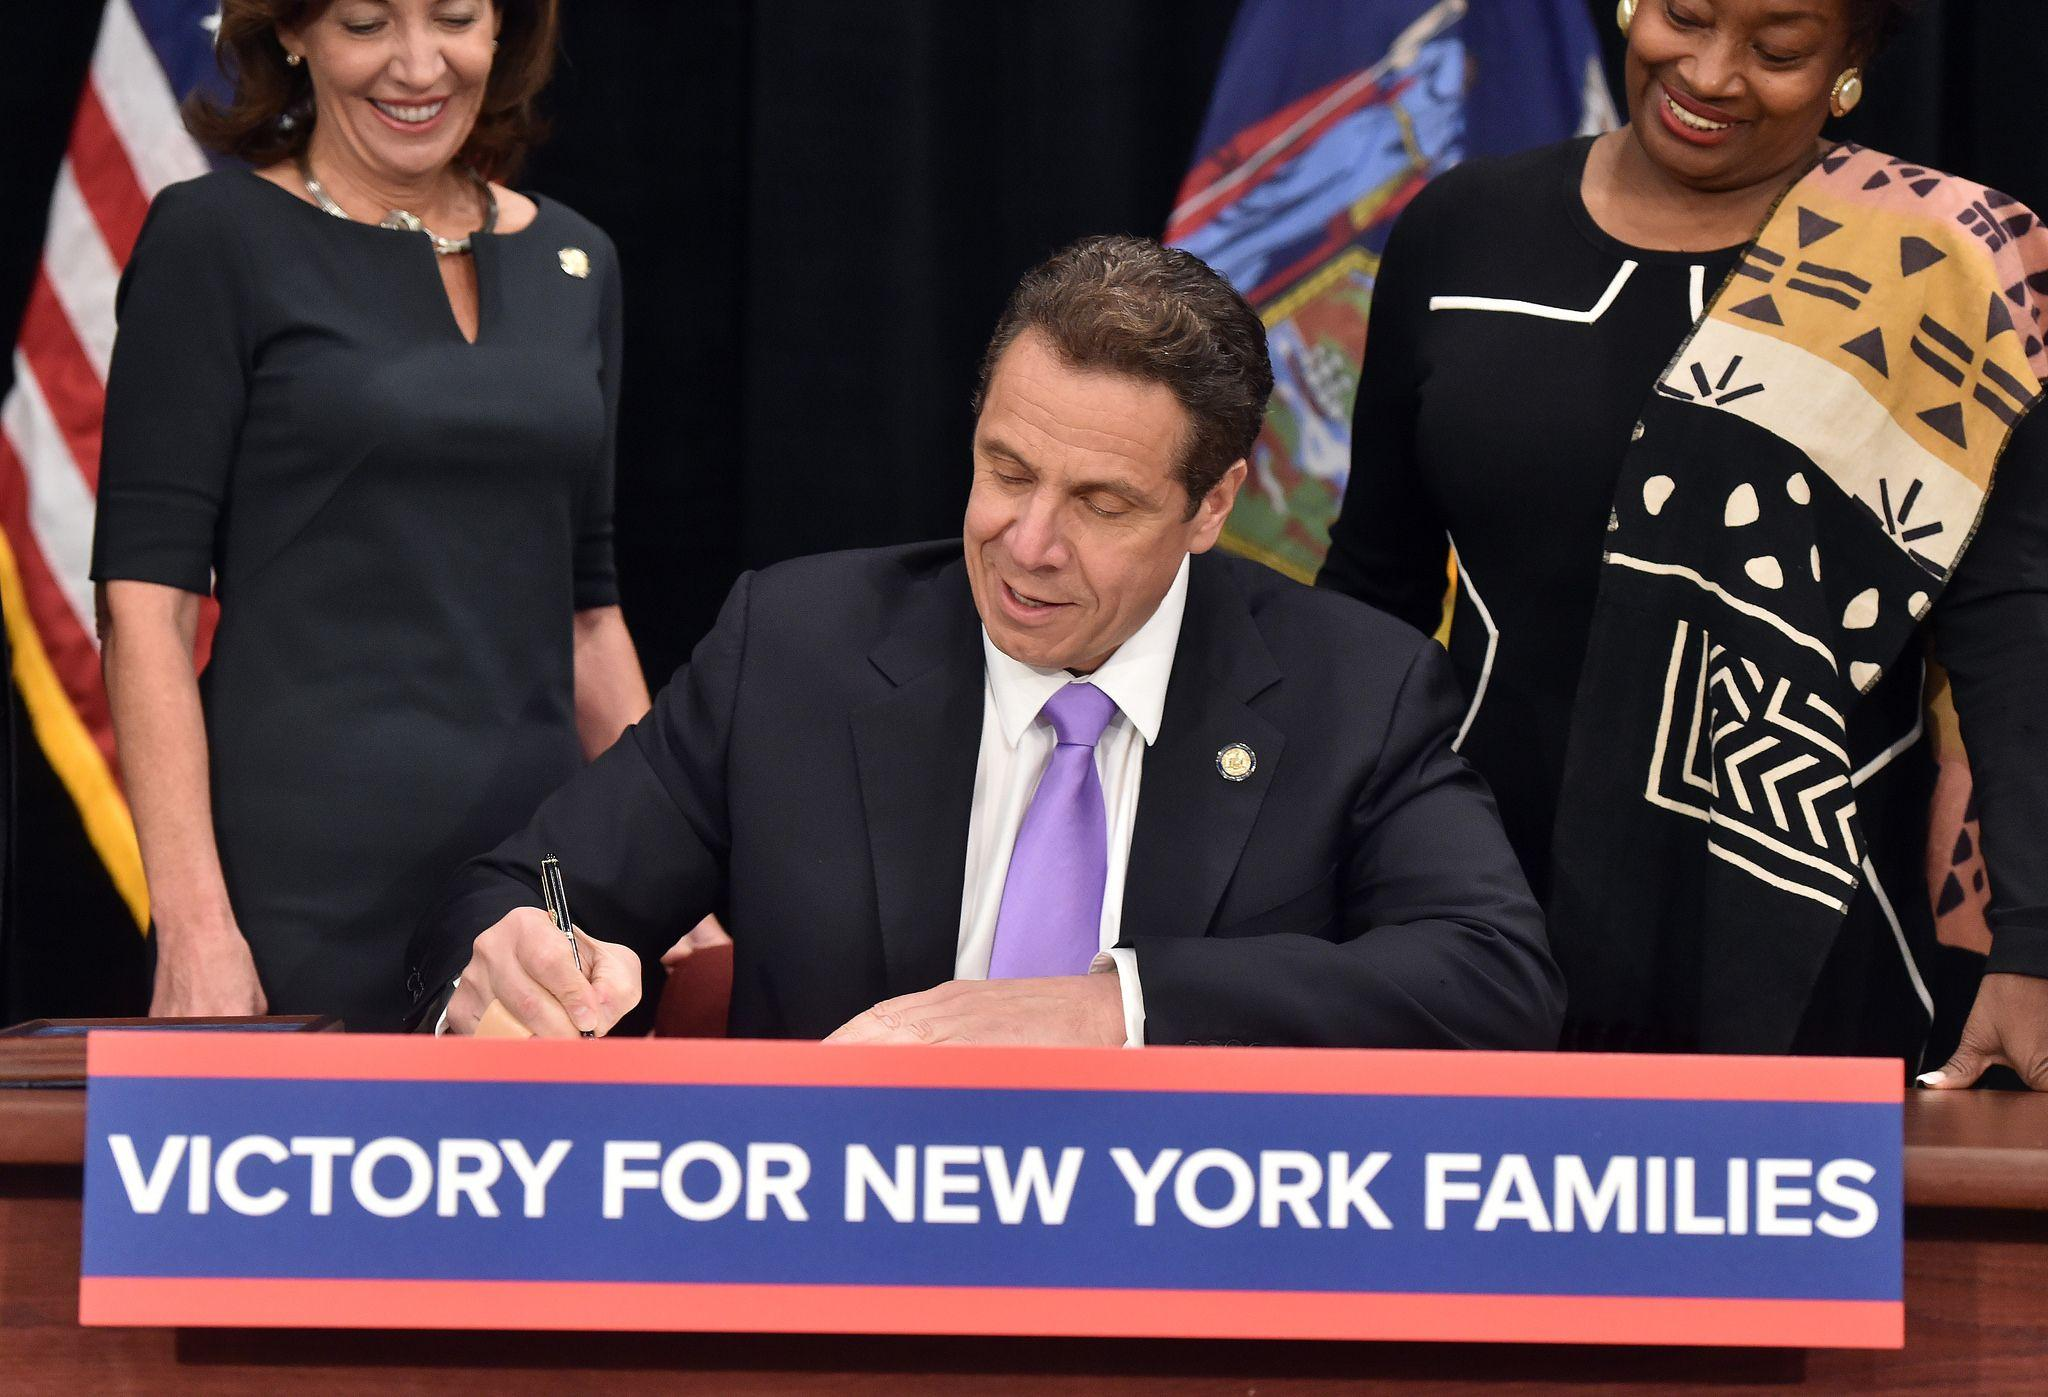 Governor Cuomo delivers his vision for the Empire State in 2018